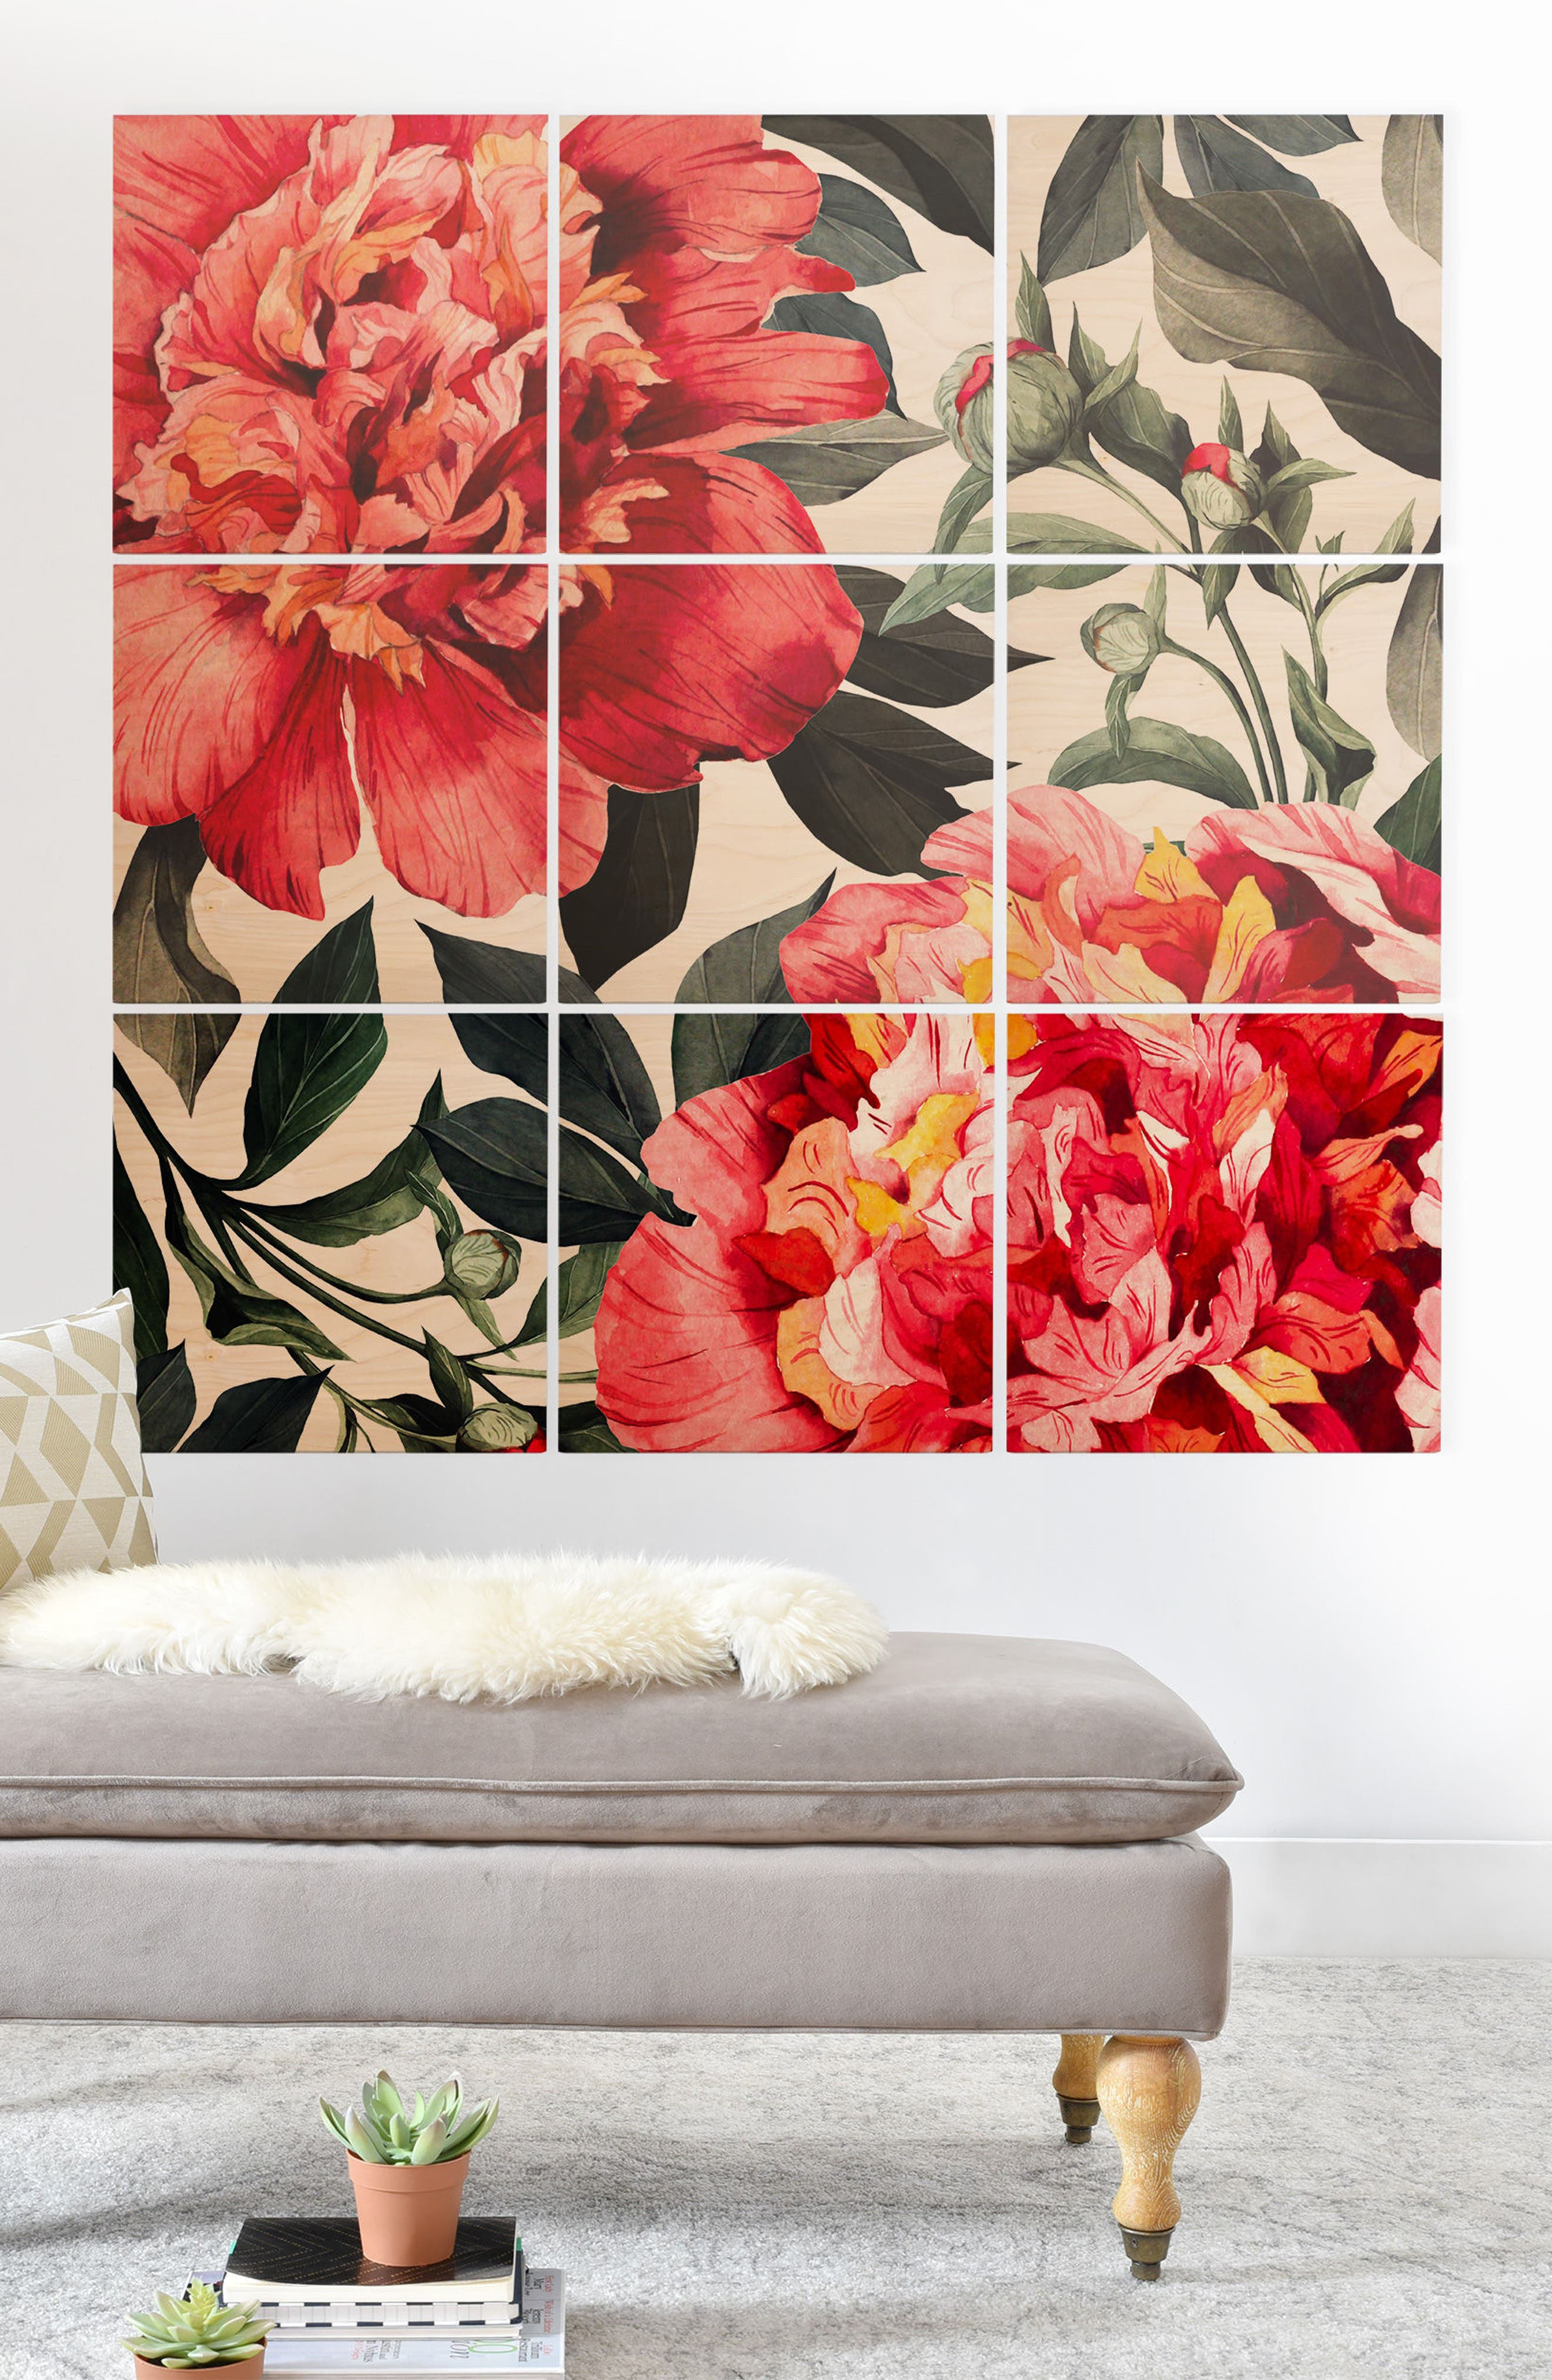 Red Flowers 9-Piece Wood Wall Mural,                             Alternate thumbnail 2, color,                             Red